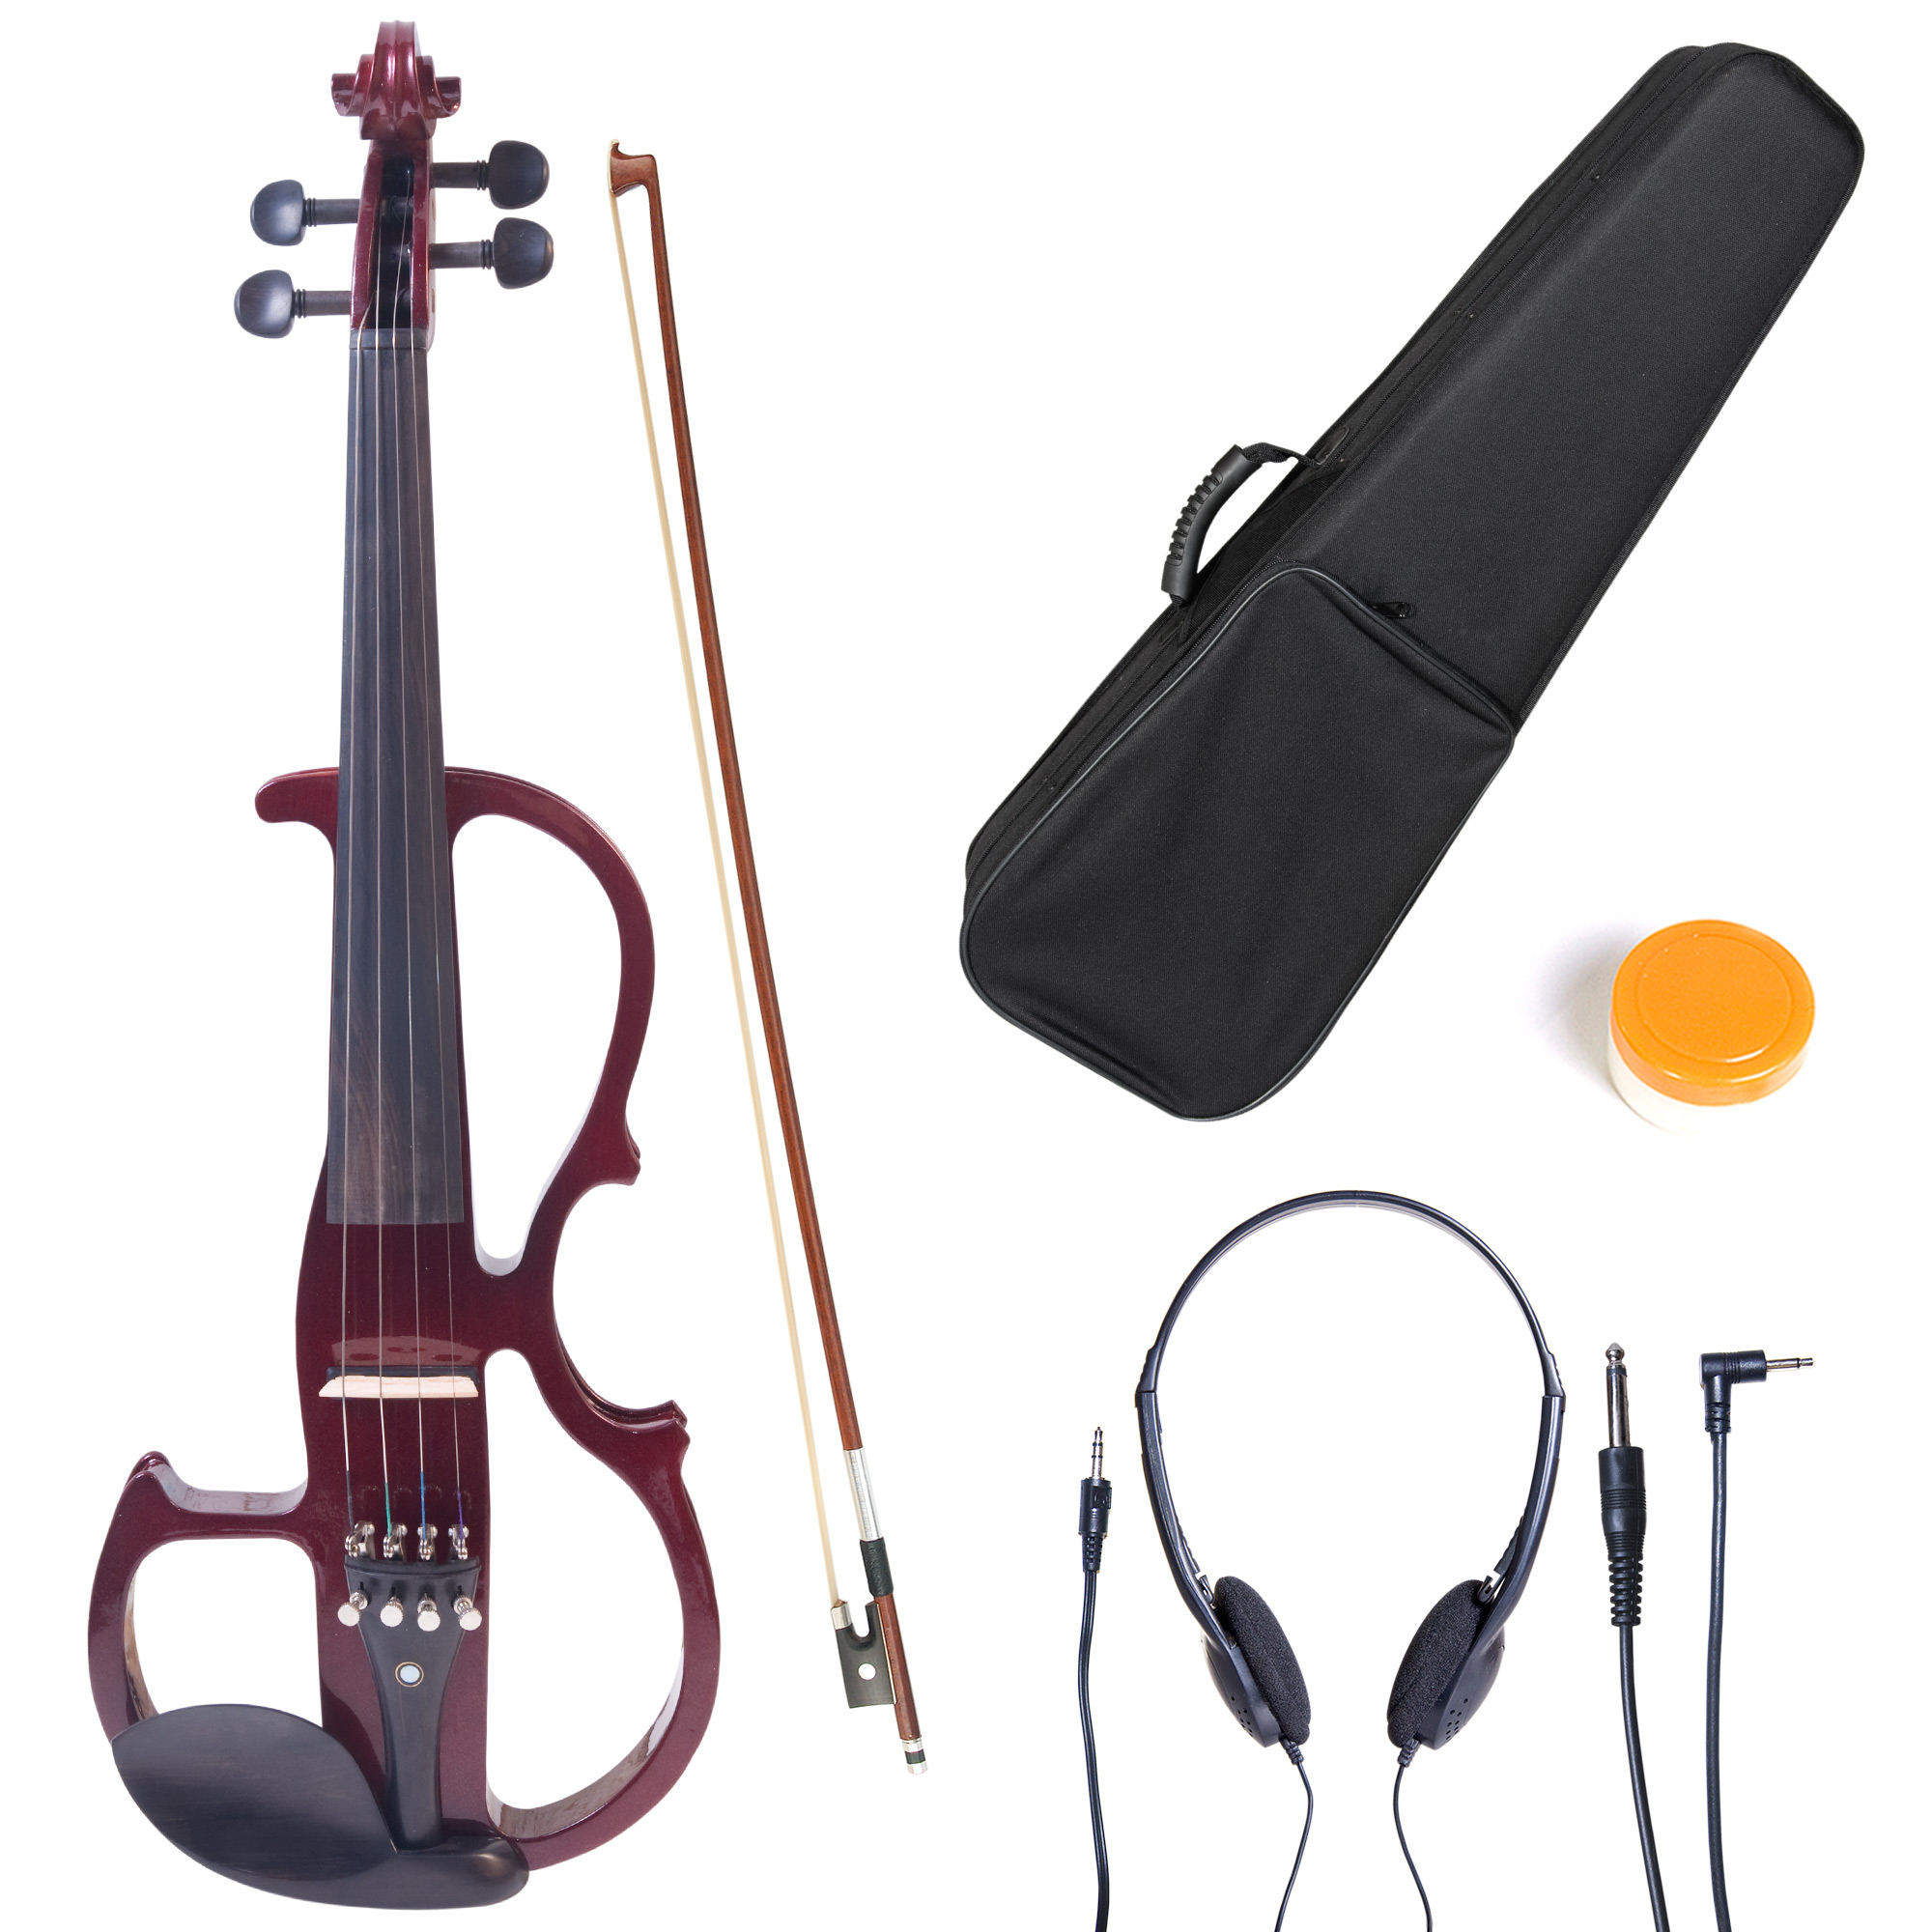 Cecilio 4/4 CEVN-2NA Solidwood Metallic Mahogany Electric/Silent Violin with Ebony Fittings-Full Size